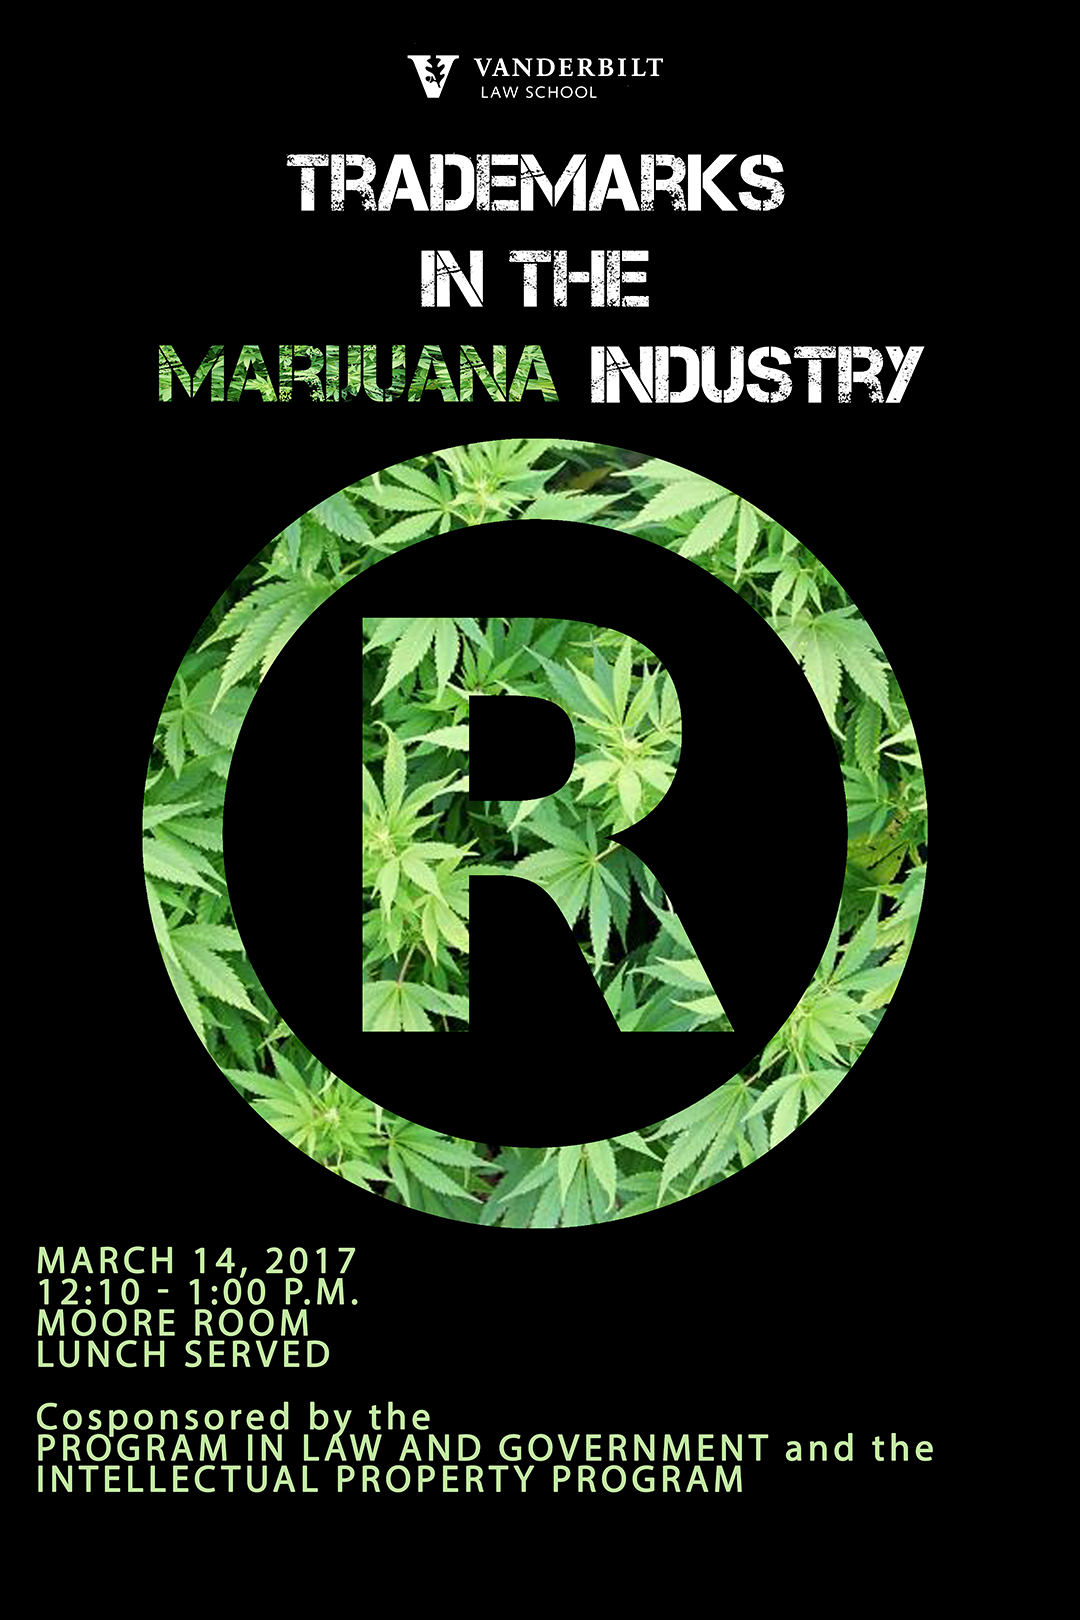 Trademarks in the Marijuana Industry